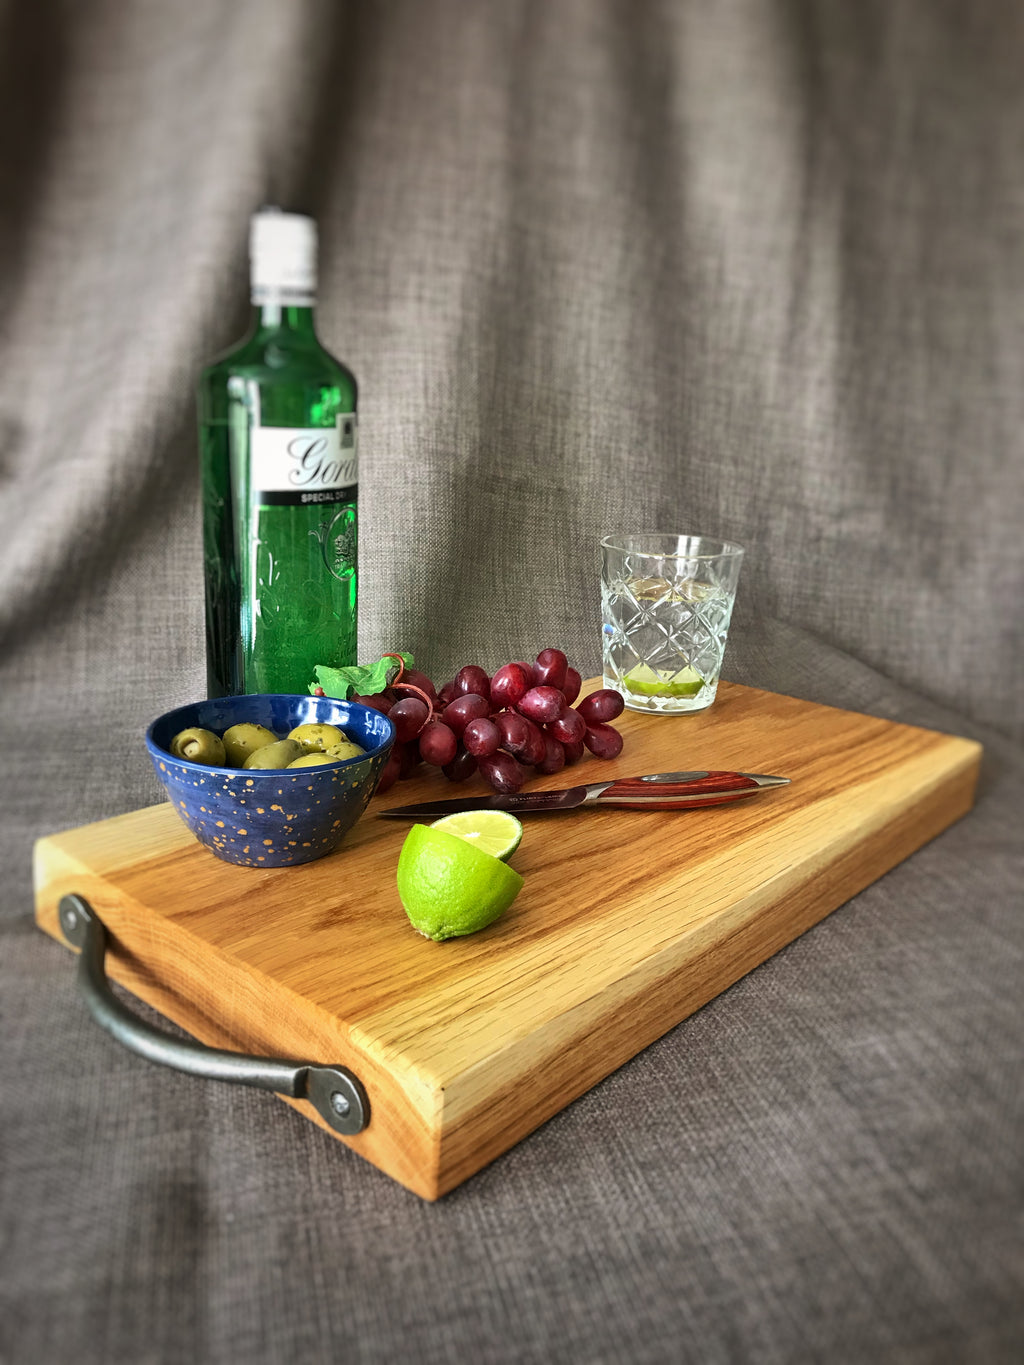 Large heavy duty chopping board